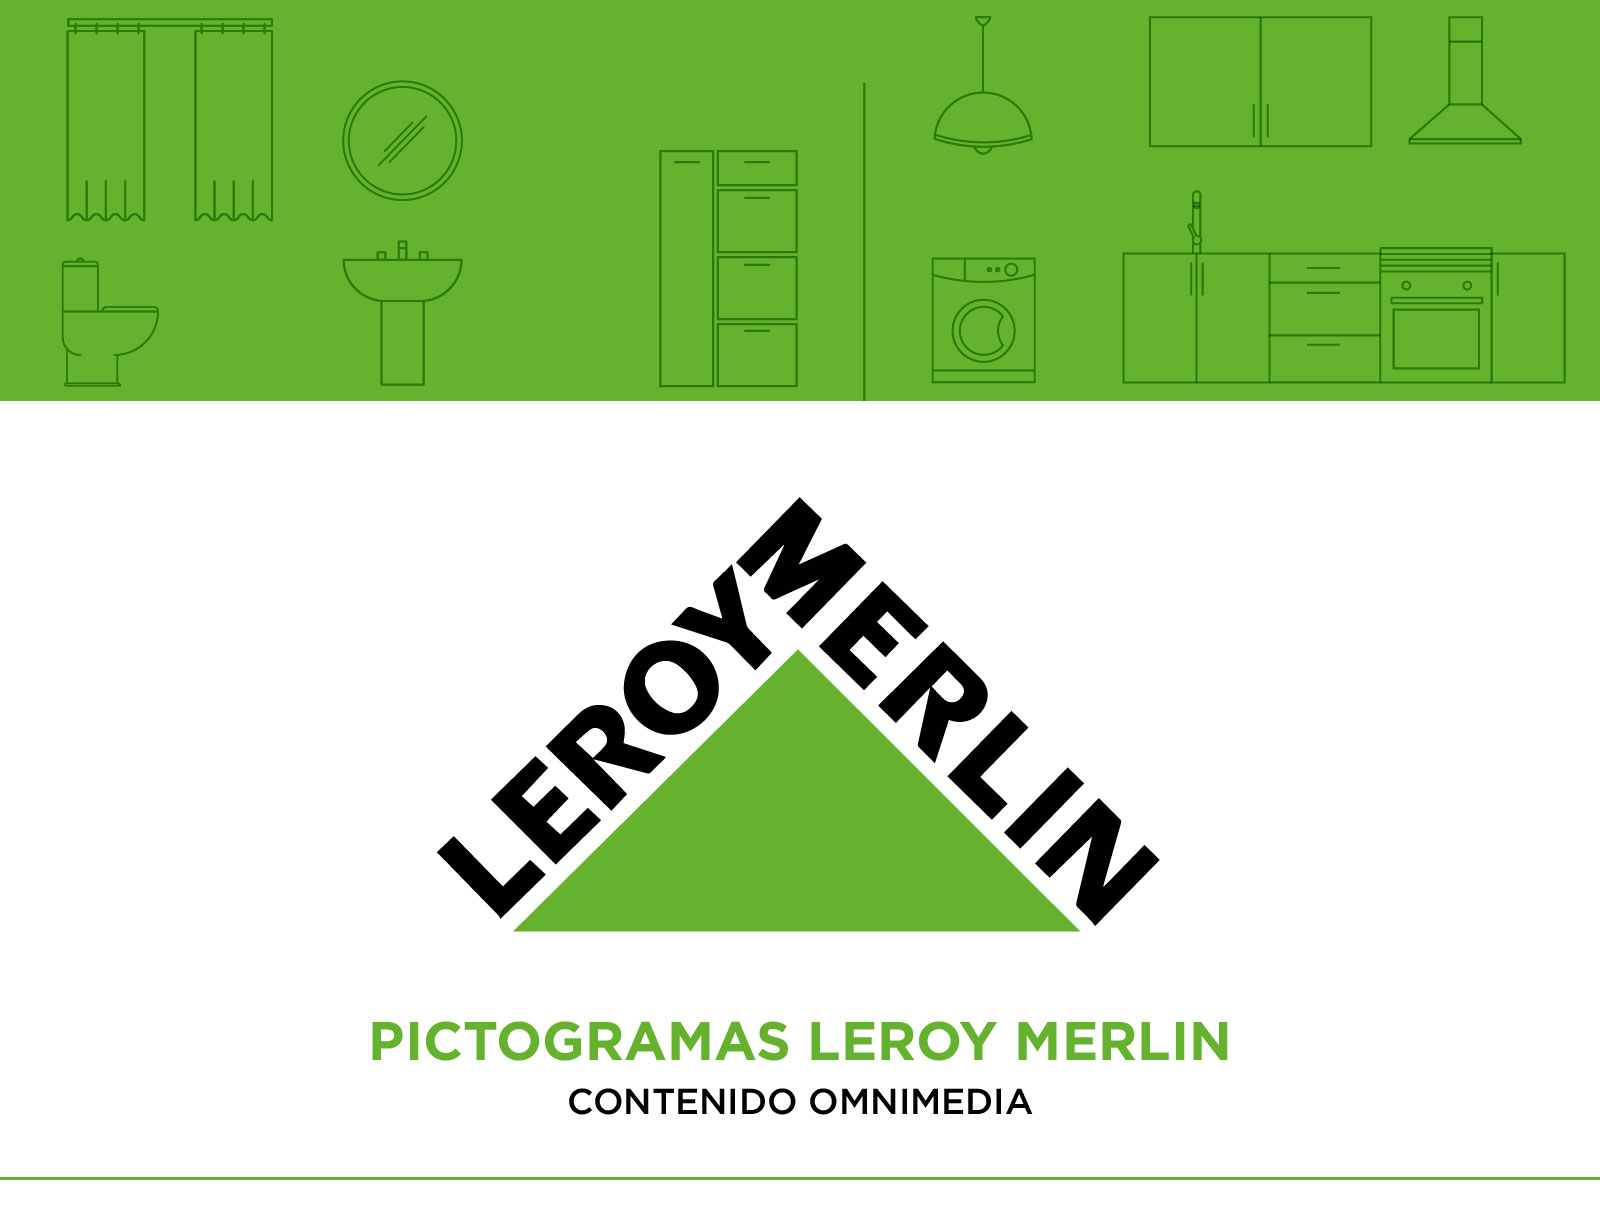 Pictogramas leroy merlin, diseño de pictogramas, iconos, icon design